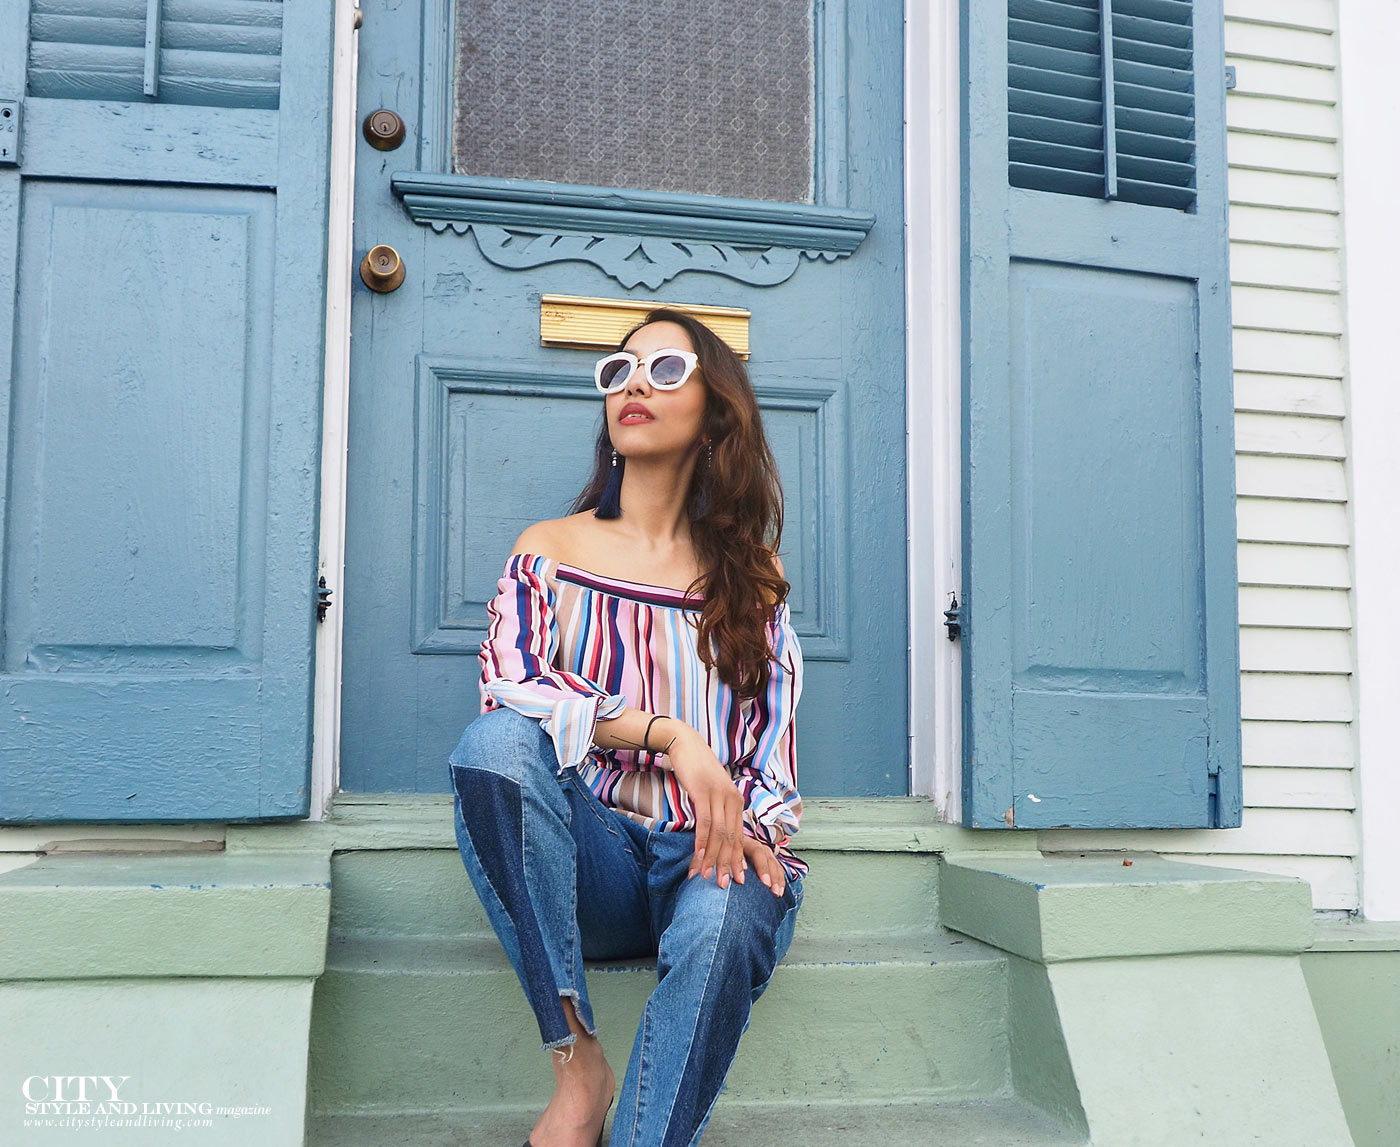 City style and living magazine The Editors Notebook style fashion blogger Shivana Maharaj New Orleans French Quarter Off shoulder top and ankle biter jeans sitting on steps